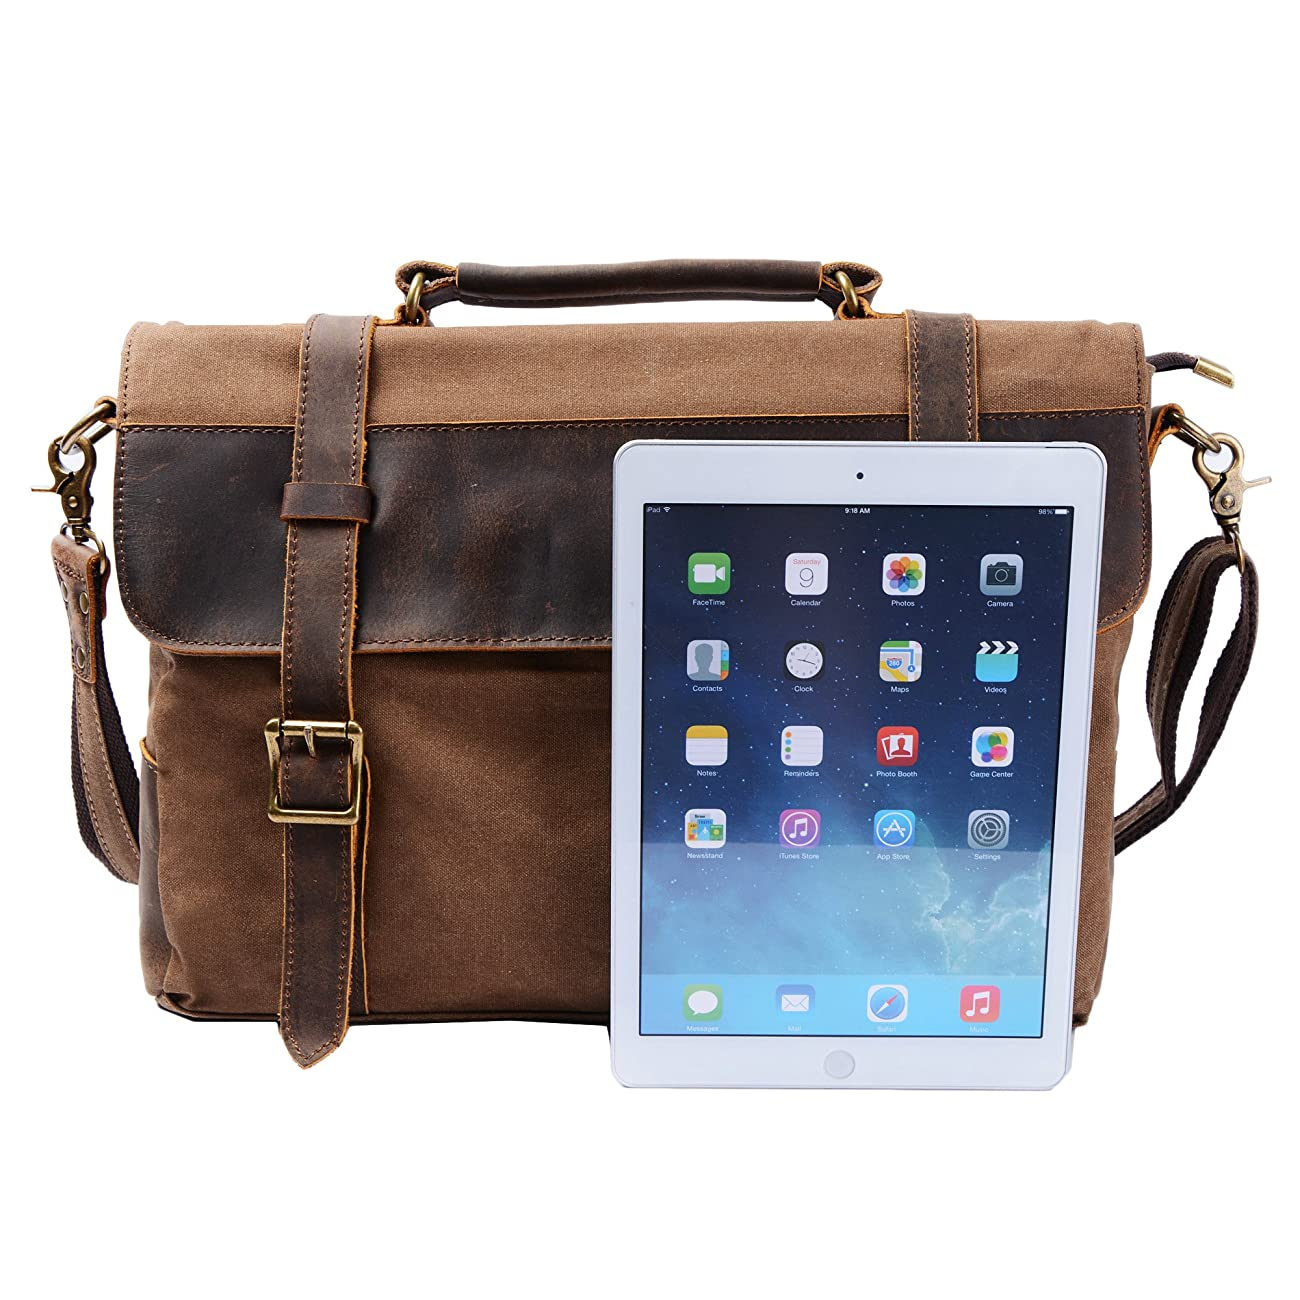 S ZONE Vintage Canvas Leather Messenger Traveling Briefcase Shoulder Laptop Bag 3